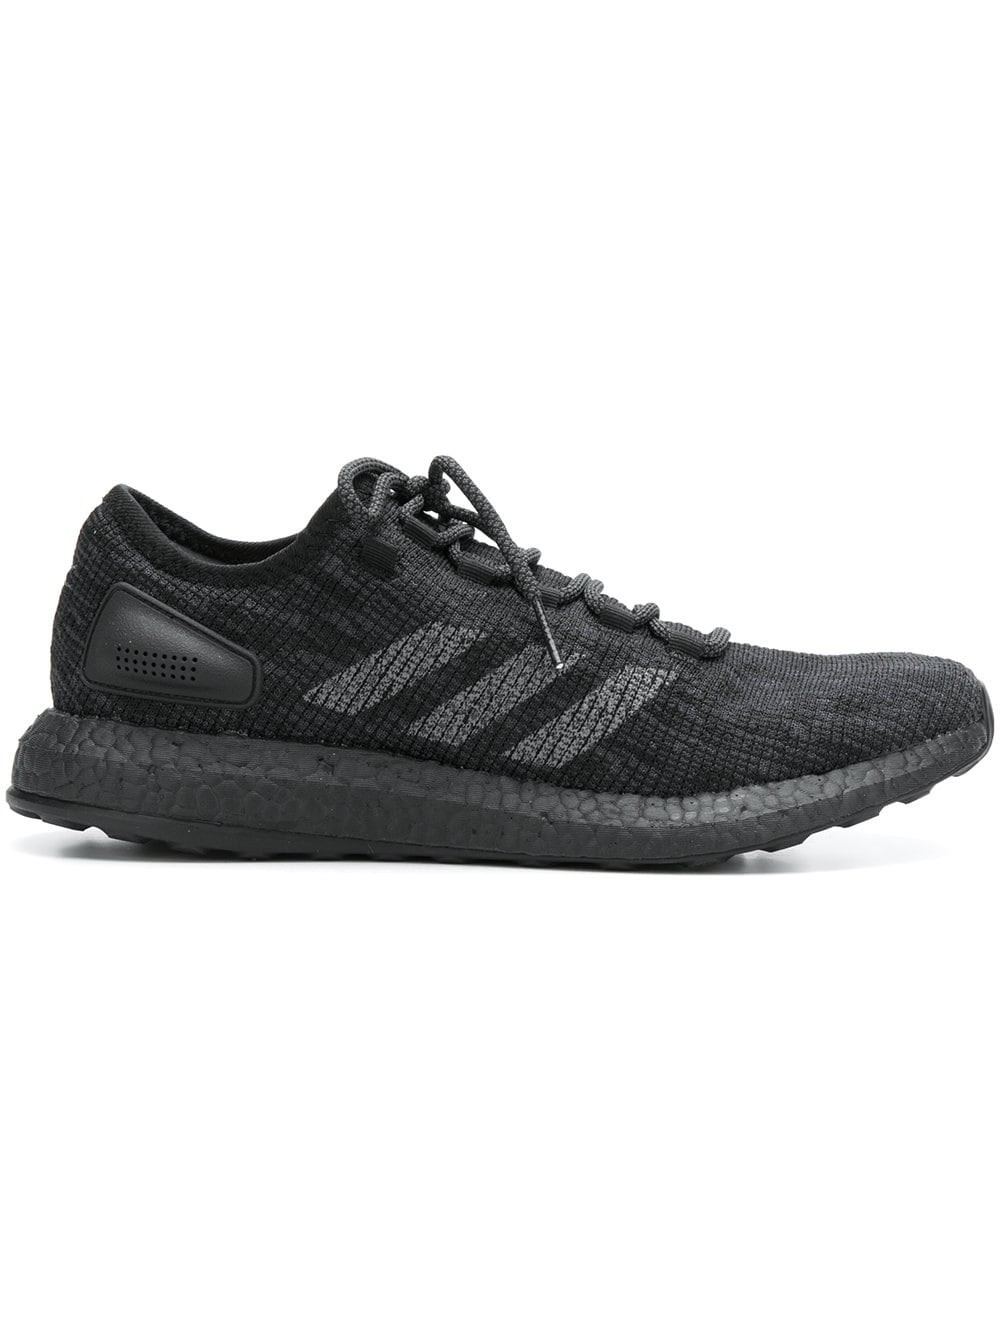 Adidas Homme Pure Boost Noir/Gris/Orange CM8304